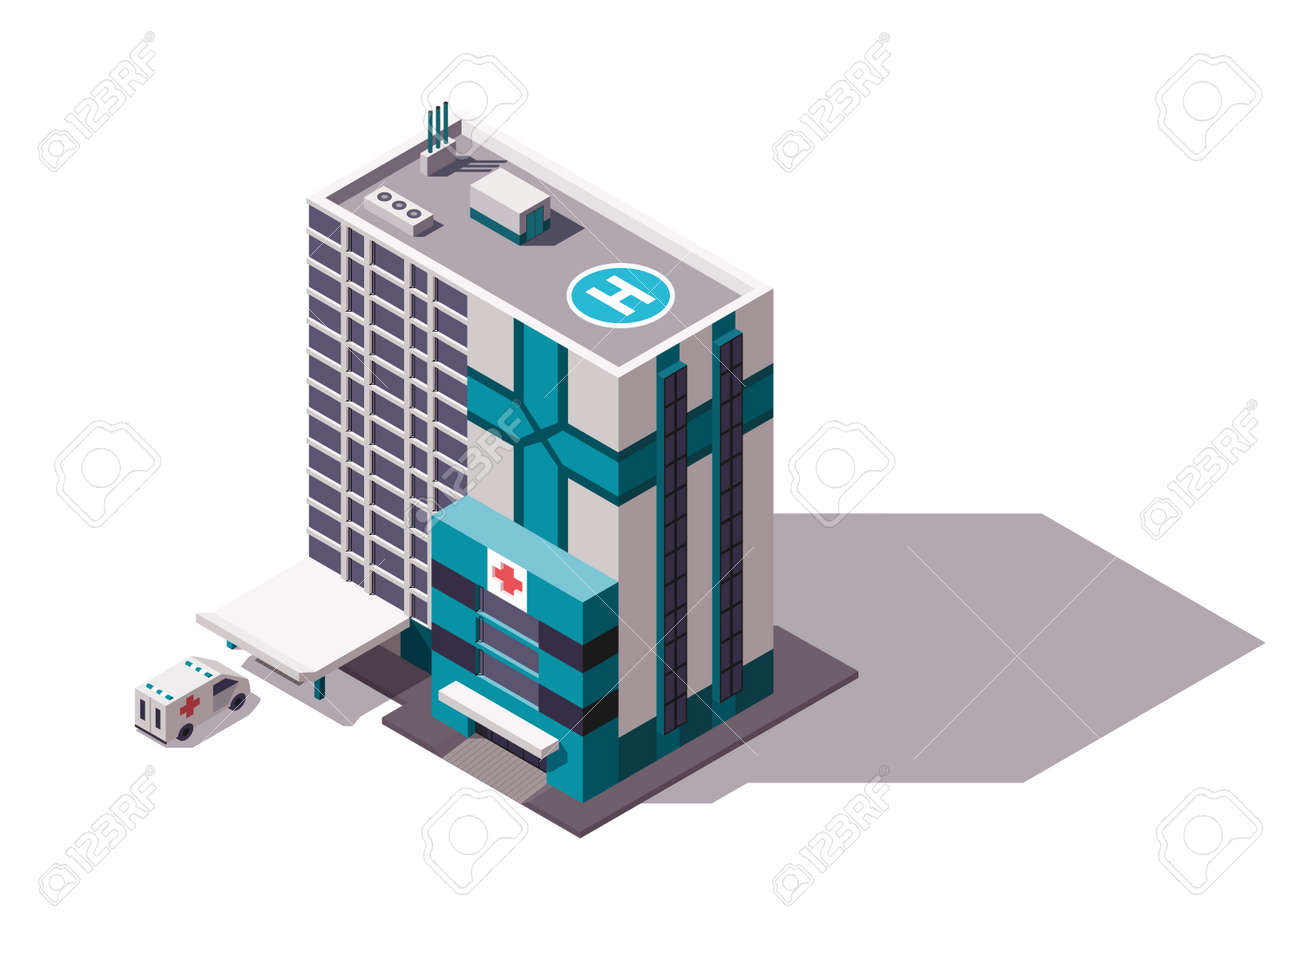 Isometric hospital or ambulance building mockup with signage, helicopter pad and transportation or ambulance van for first aid. Vector flat isolated infographic city element - 166898327